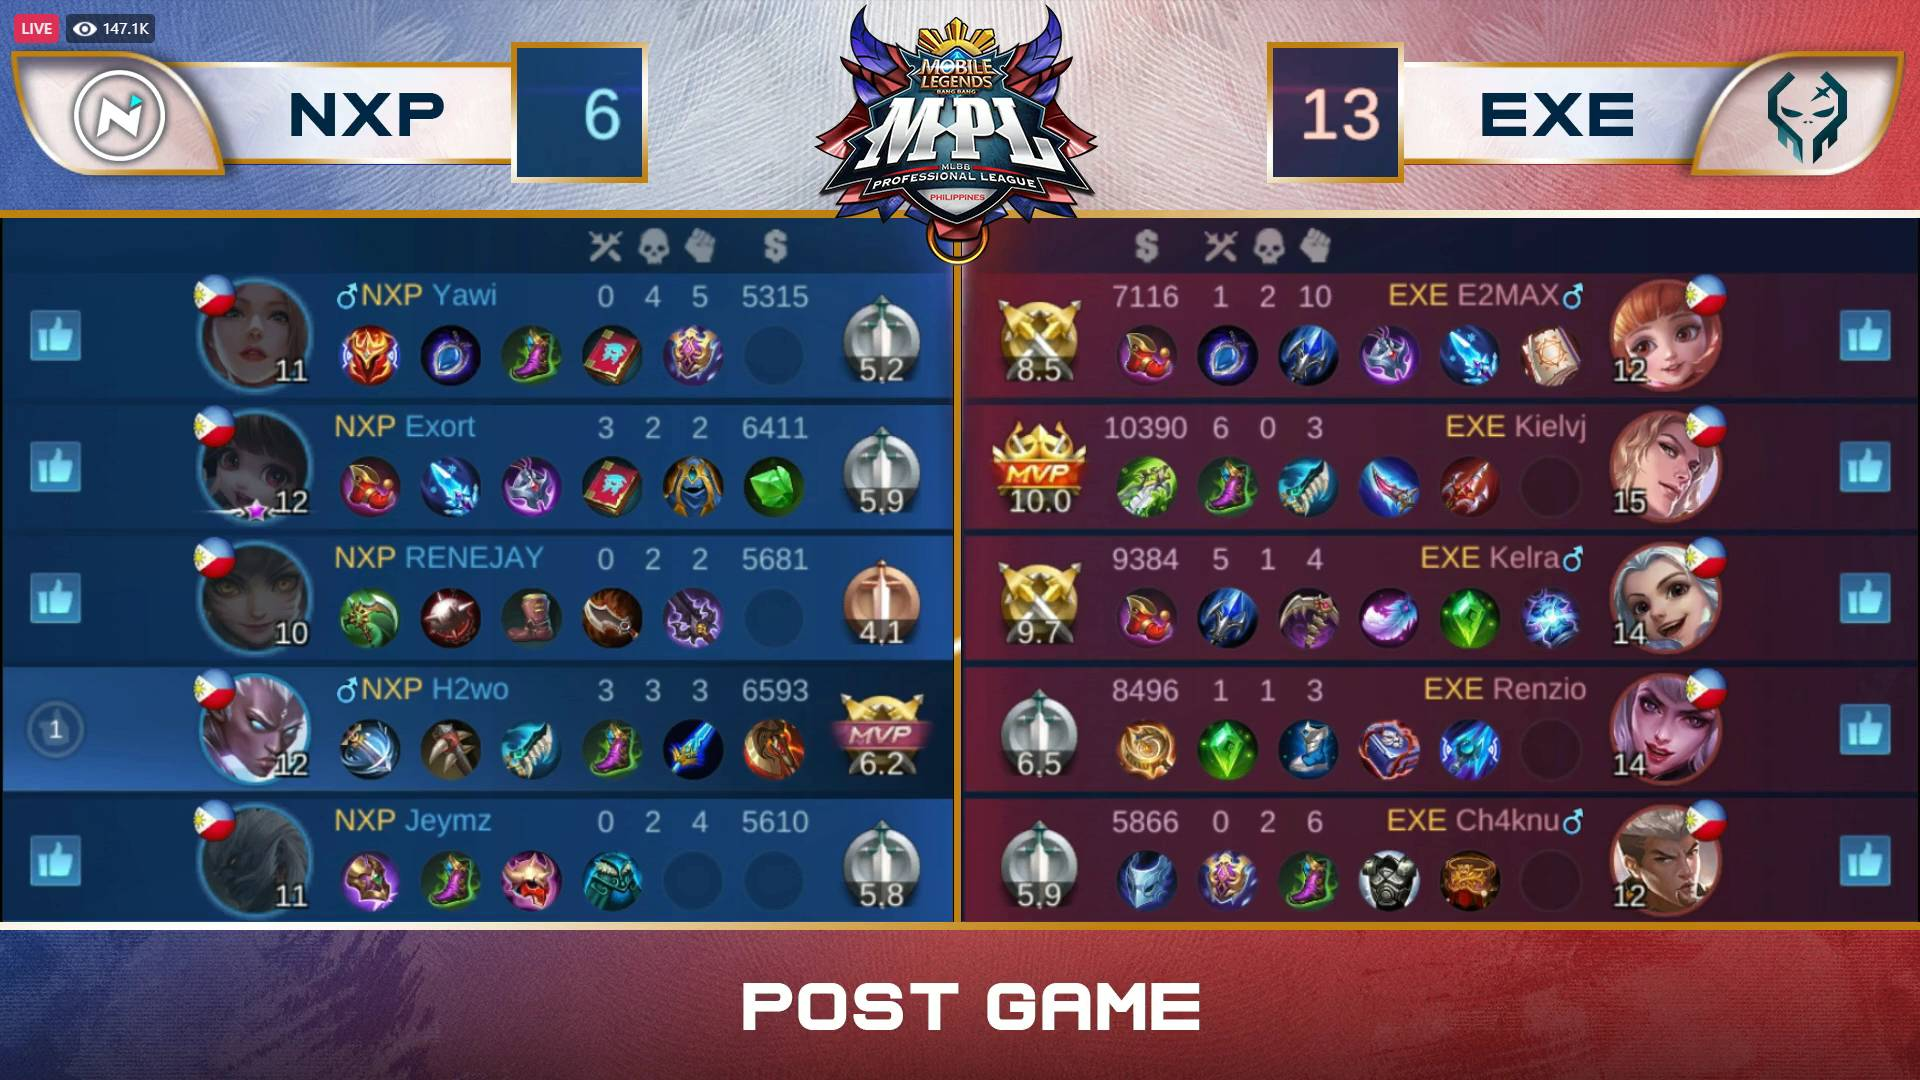 MPL-PH-7-Execration-def-NXP-Game-1 Renzio's Paquito lifts Execration past NexPlay, creates logjam in MPL PH Group B Uncategorized  - philippine sports news